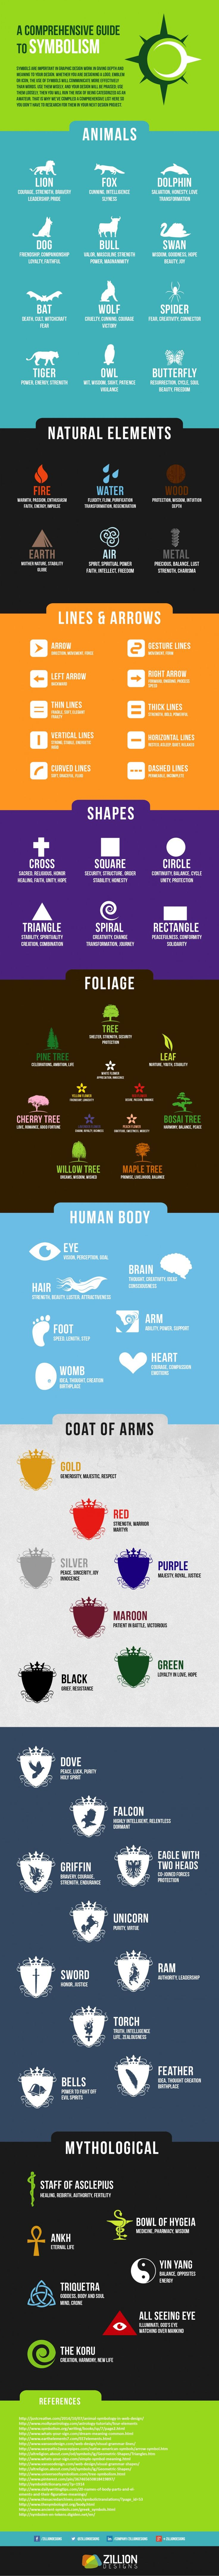 This is really interesting! This infographic covers the meanings of symbols, from animals to body parts.